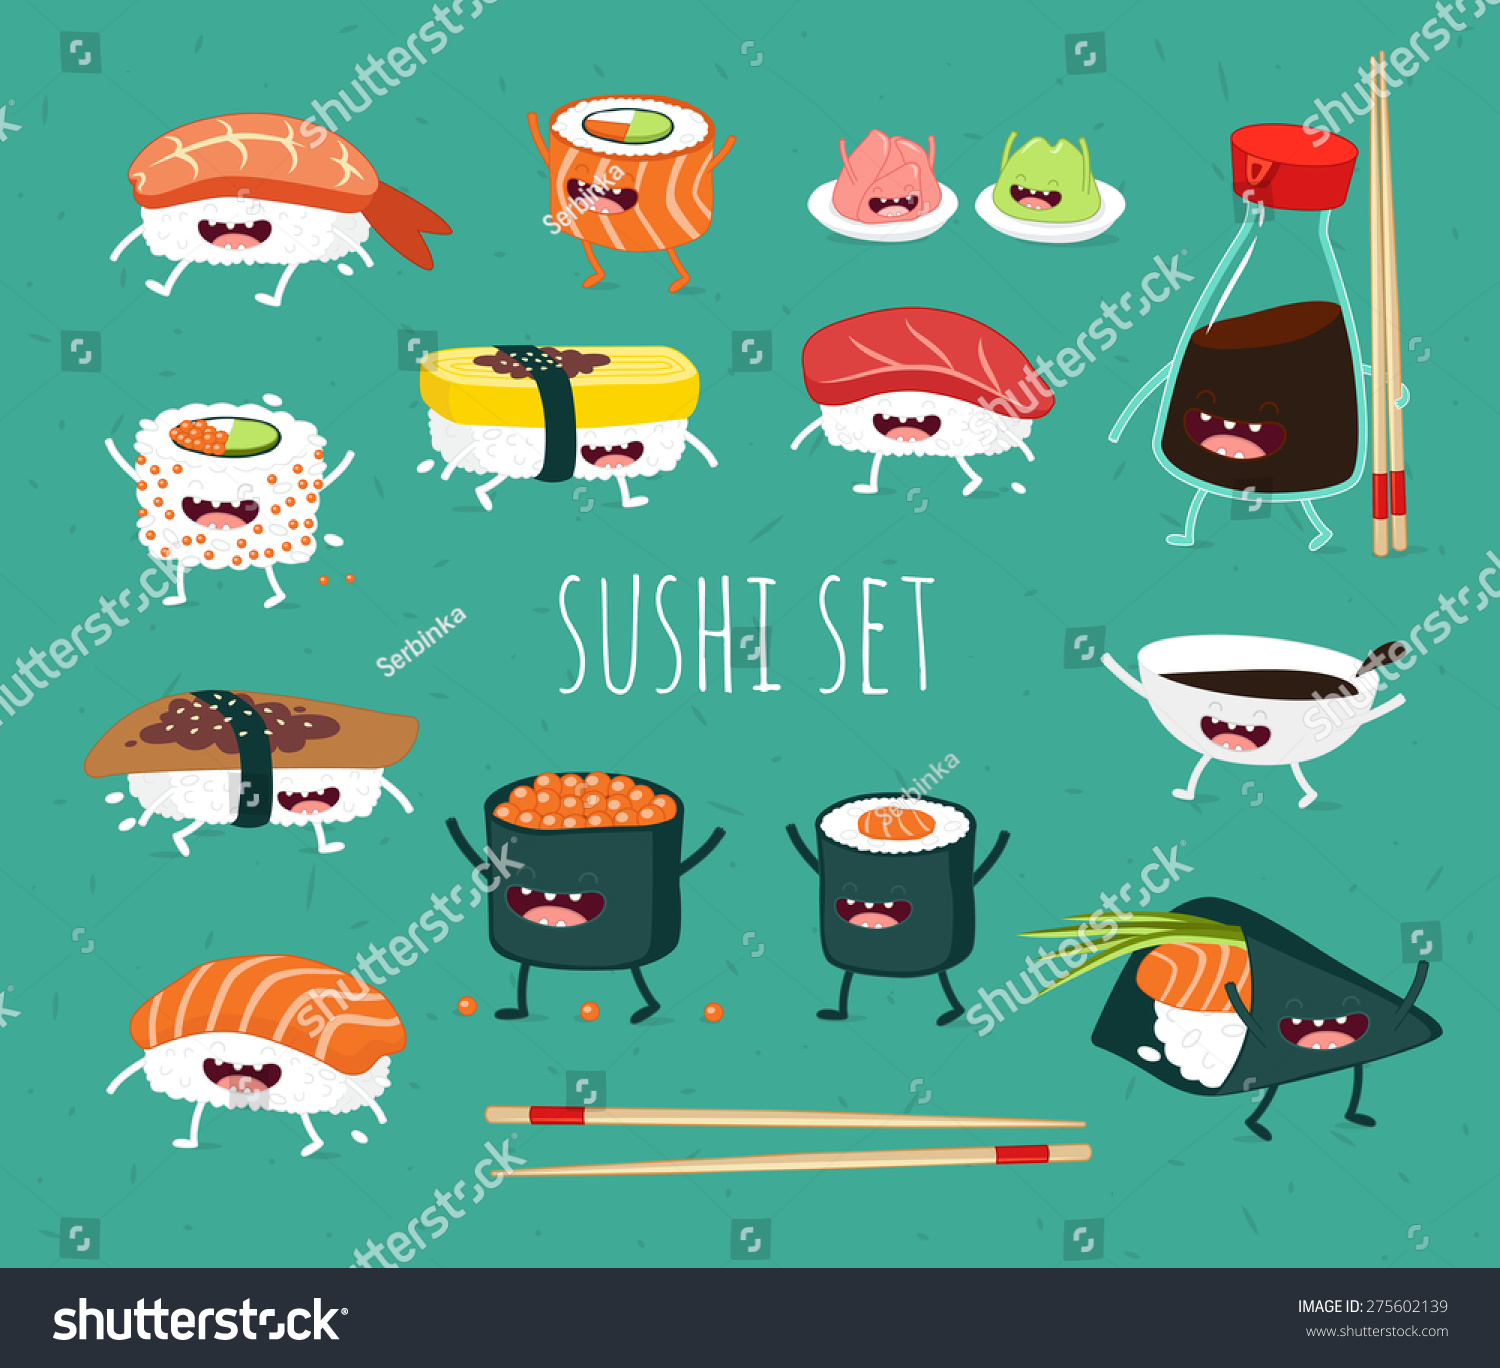 how to draw sushi roll